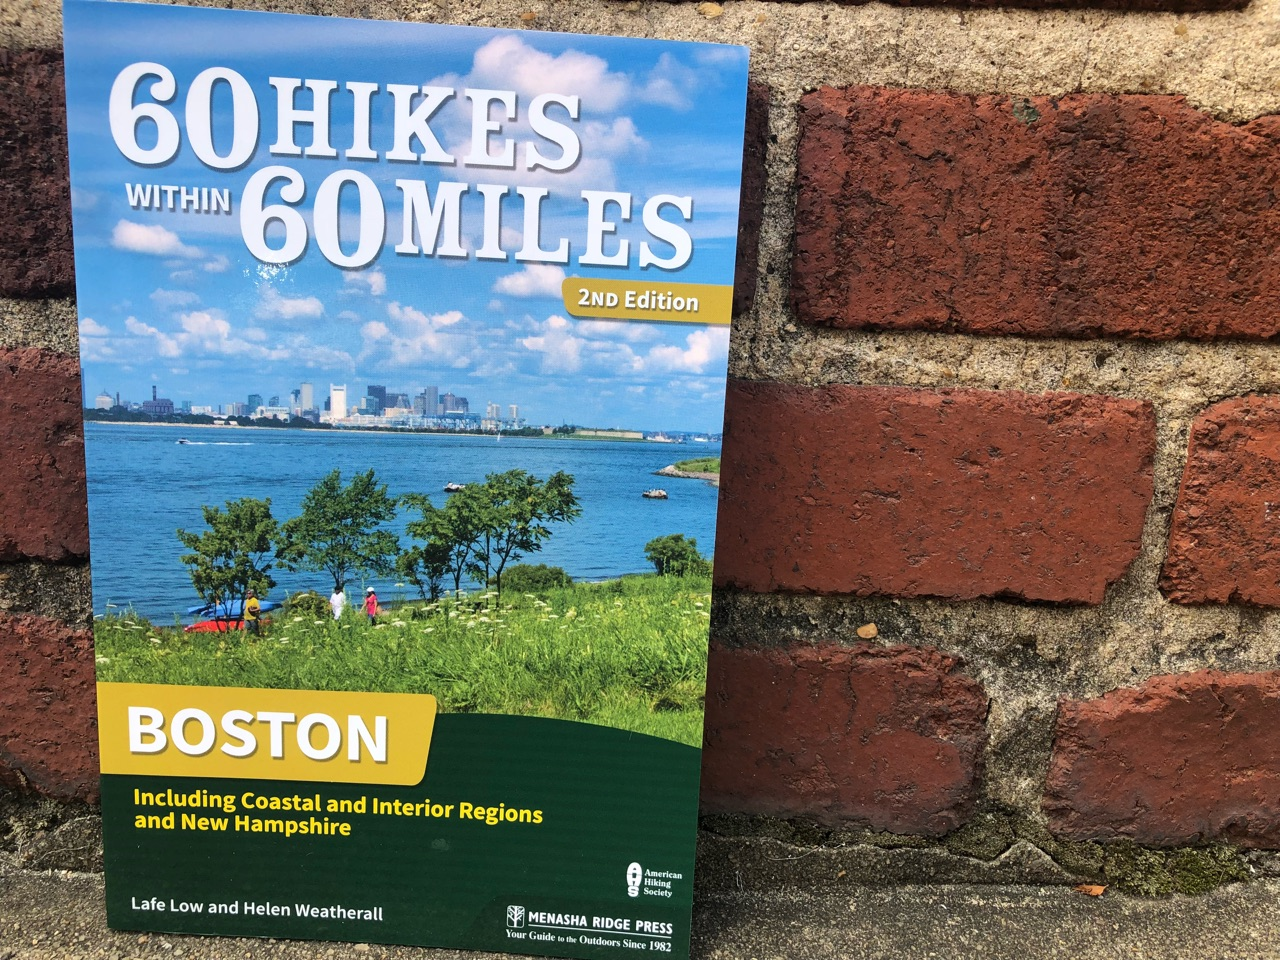 60 Hikes Within 60 Miles: Boston, Lafe Low, Menasha Ridge Press, Boston hiking